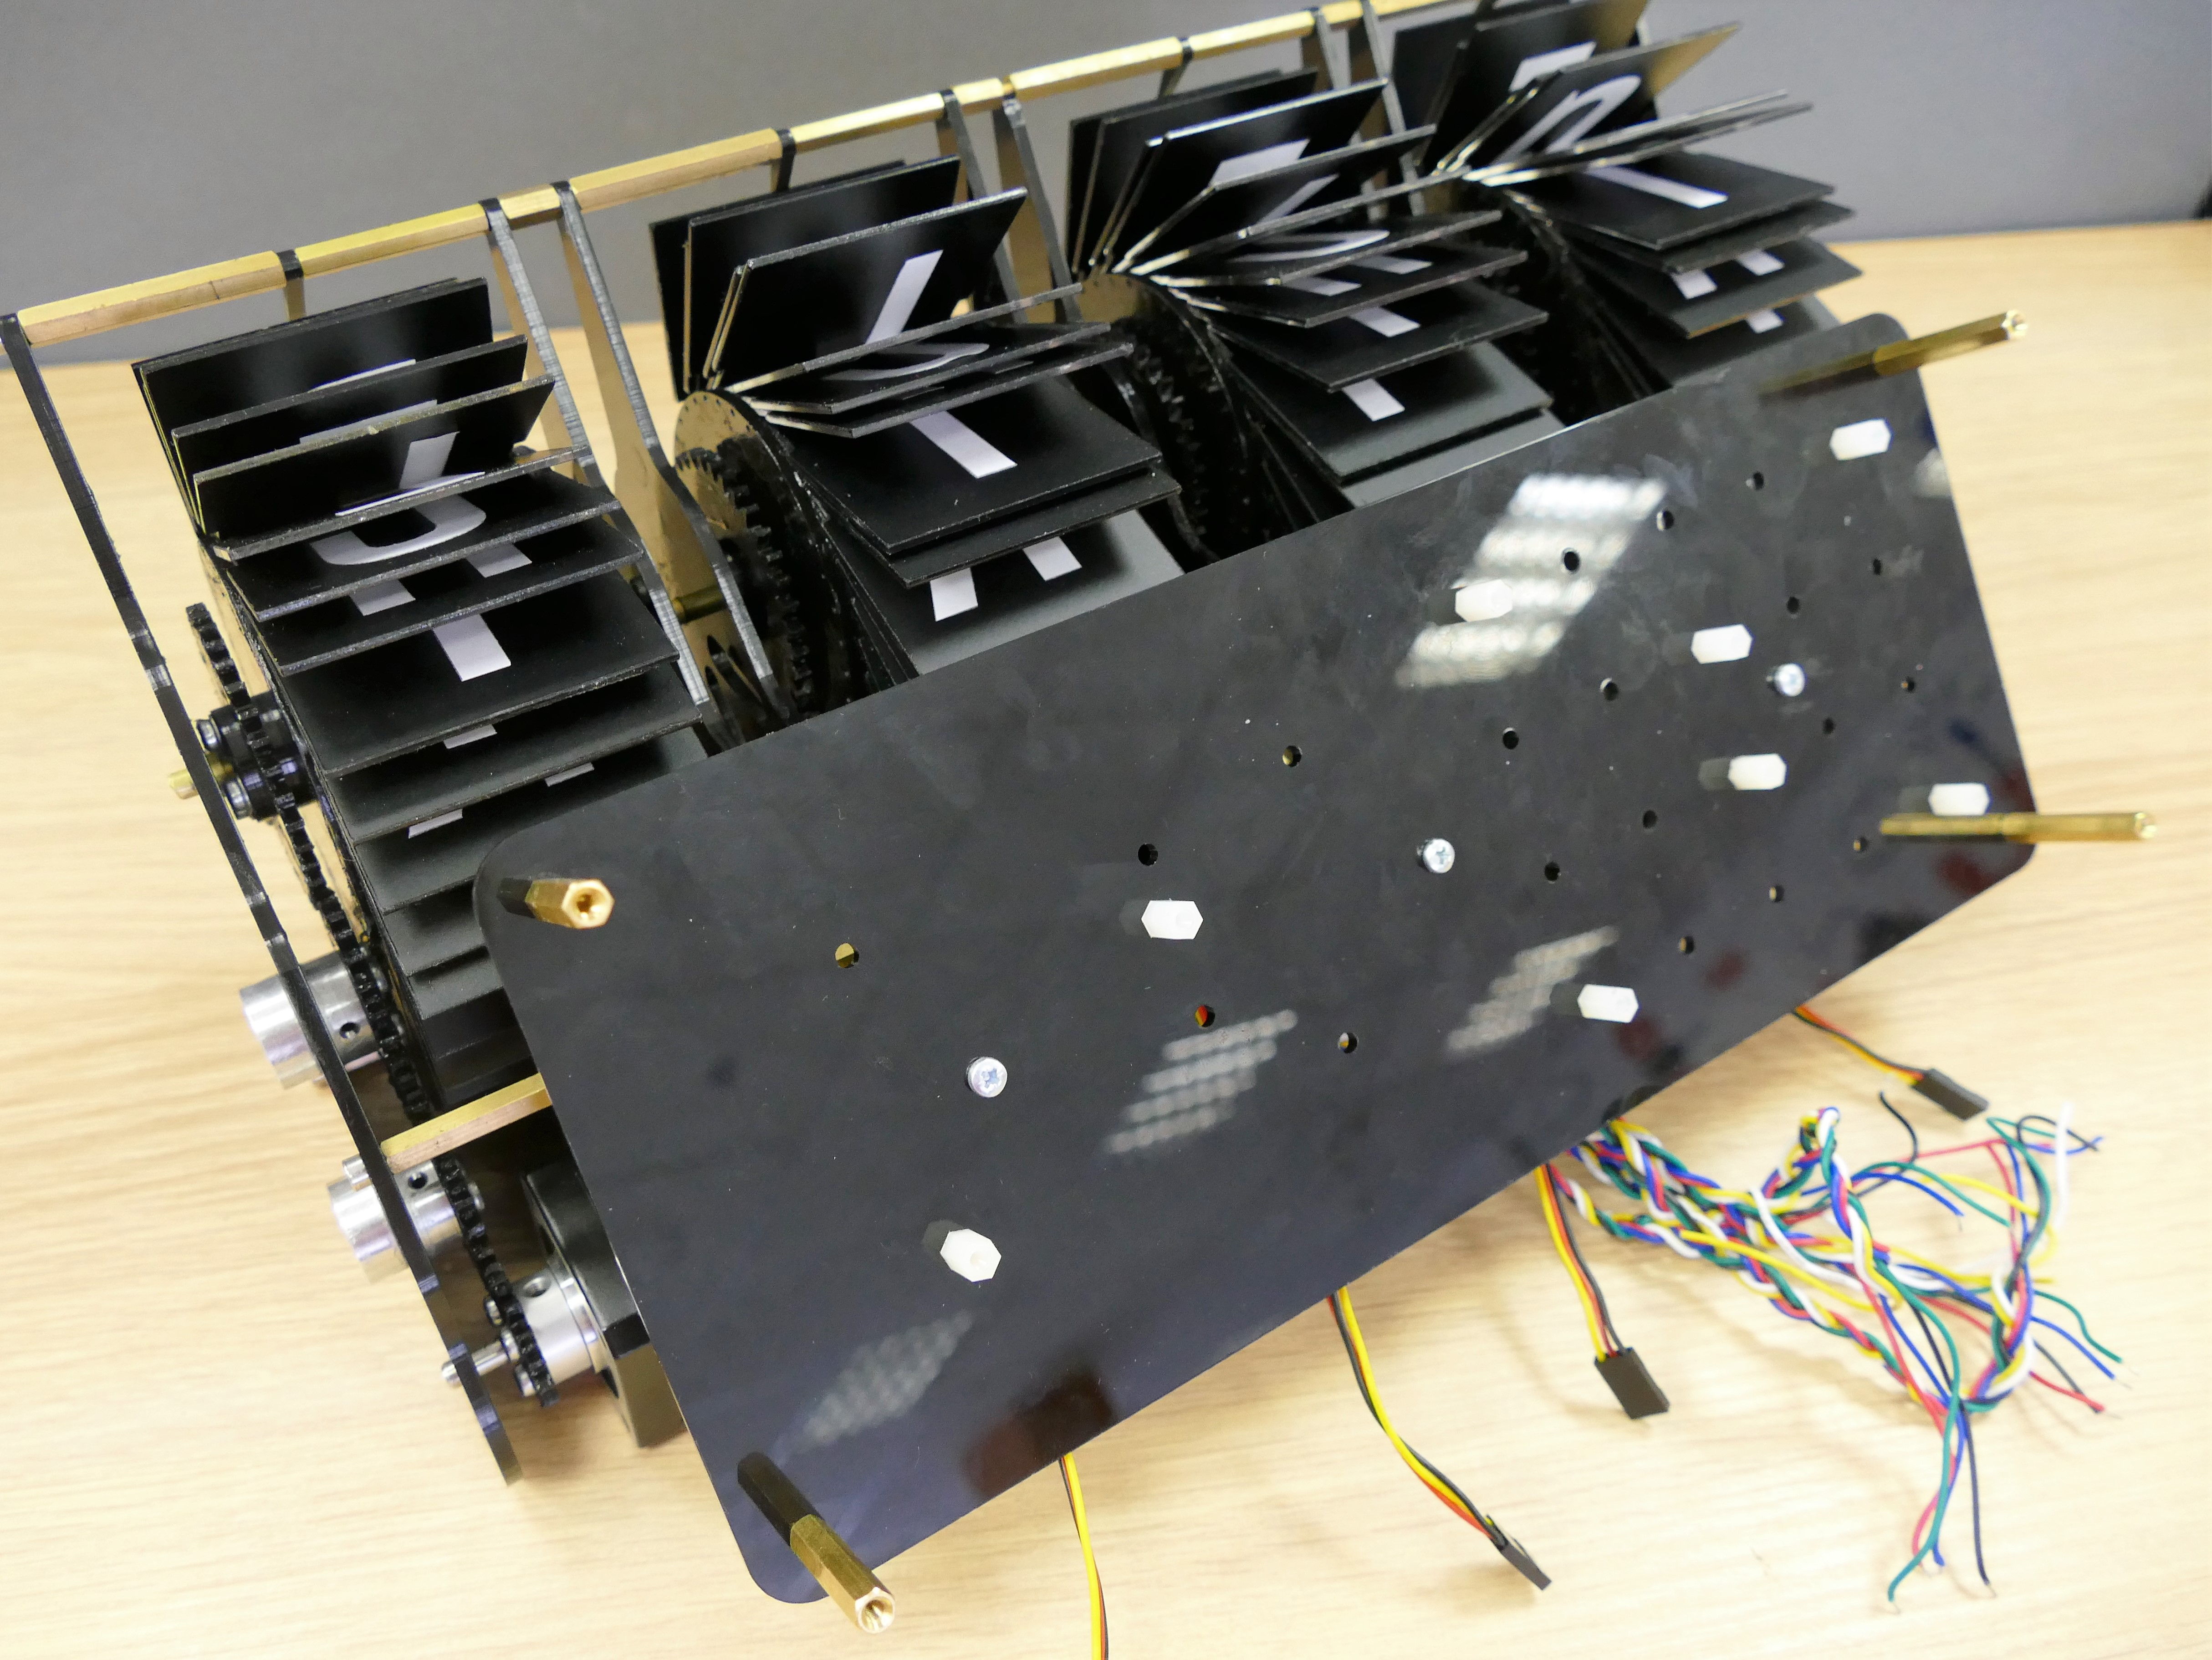 Picture of Electronics. Assembling the Panel for Electronics.